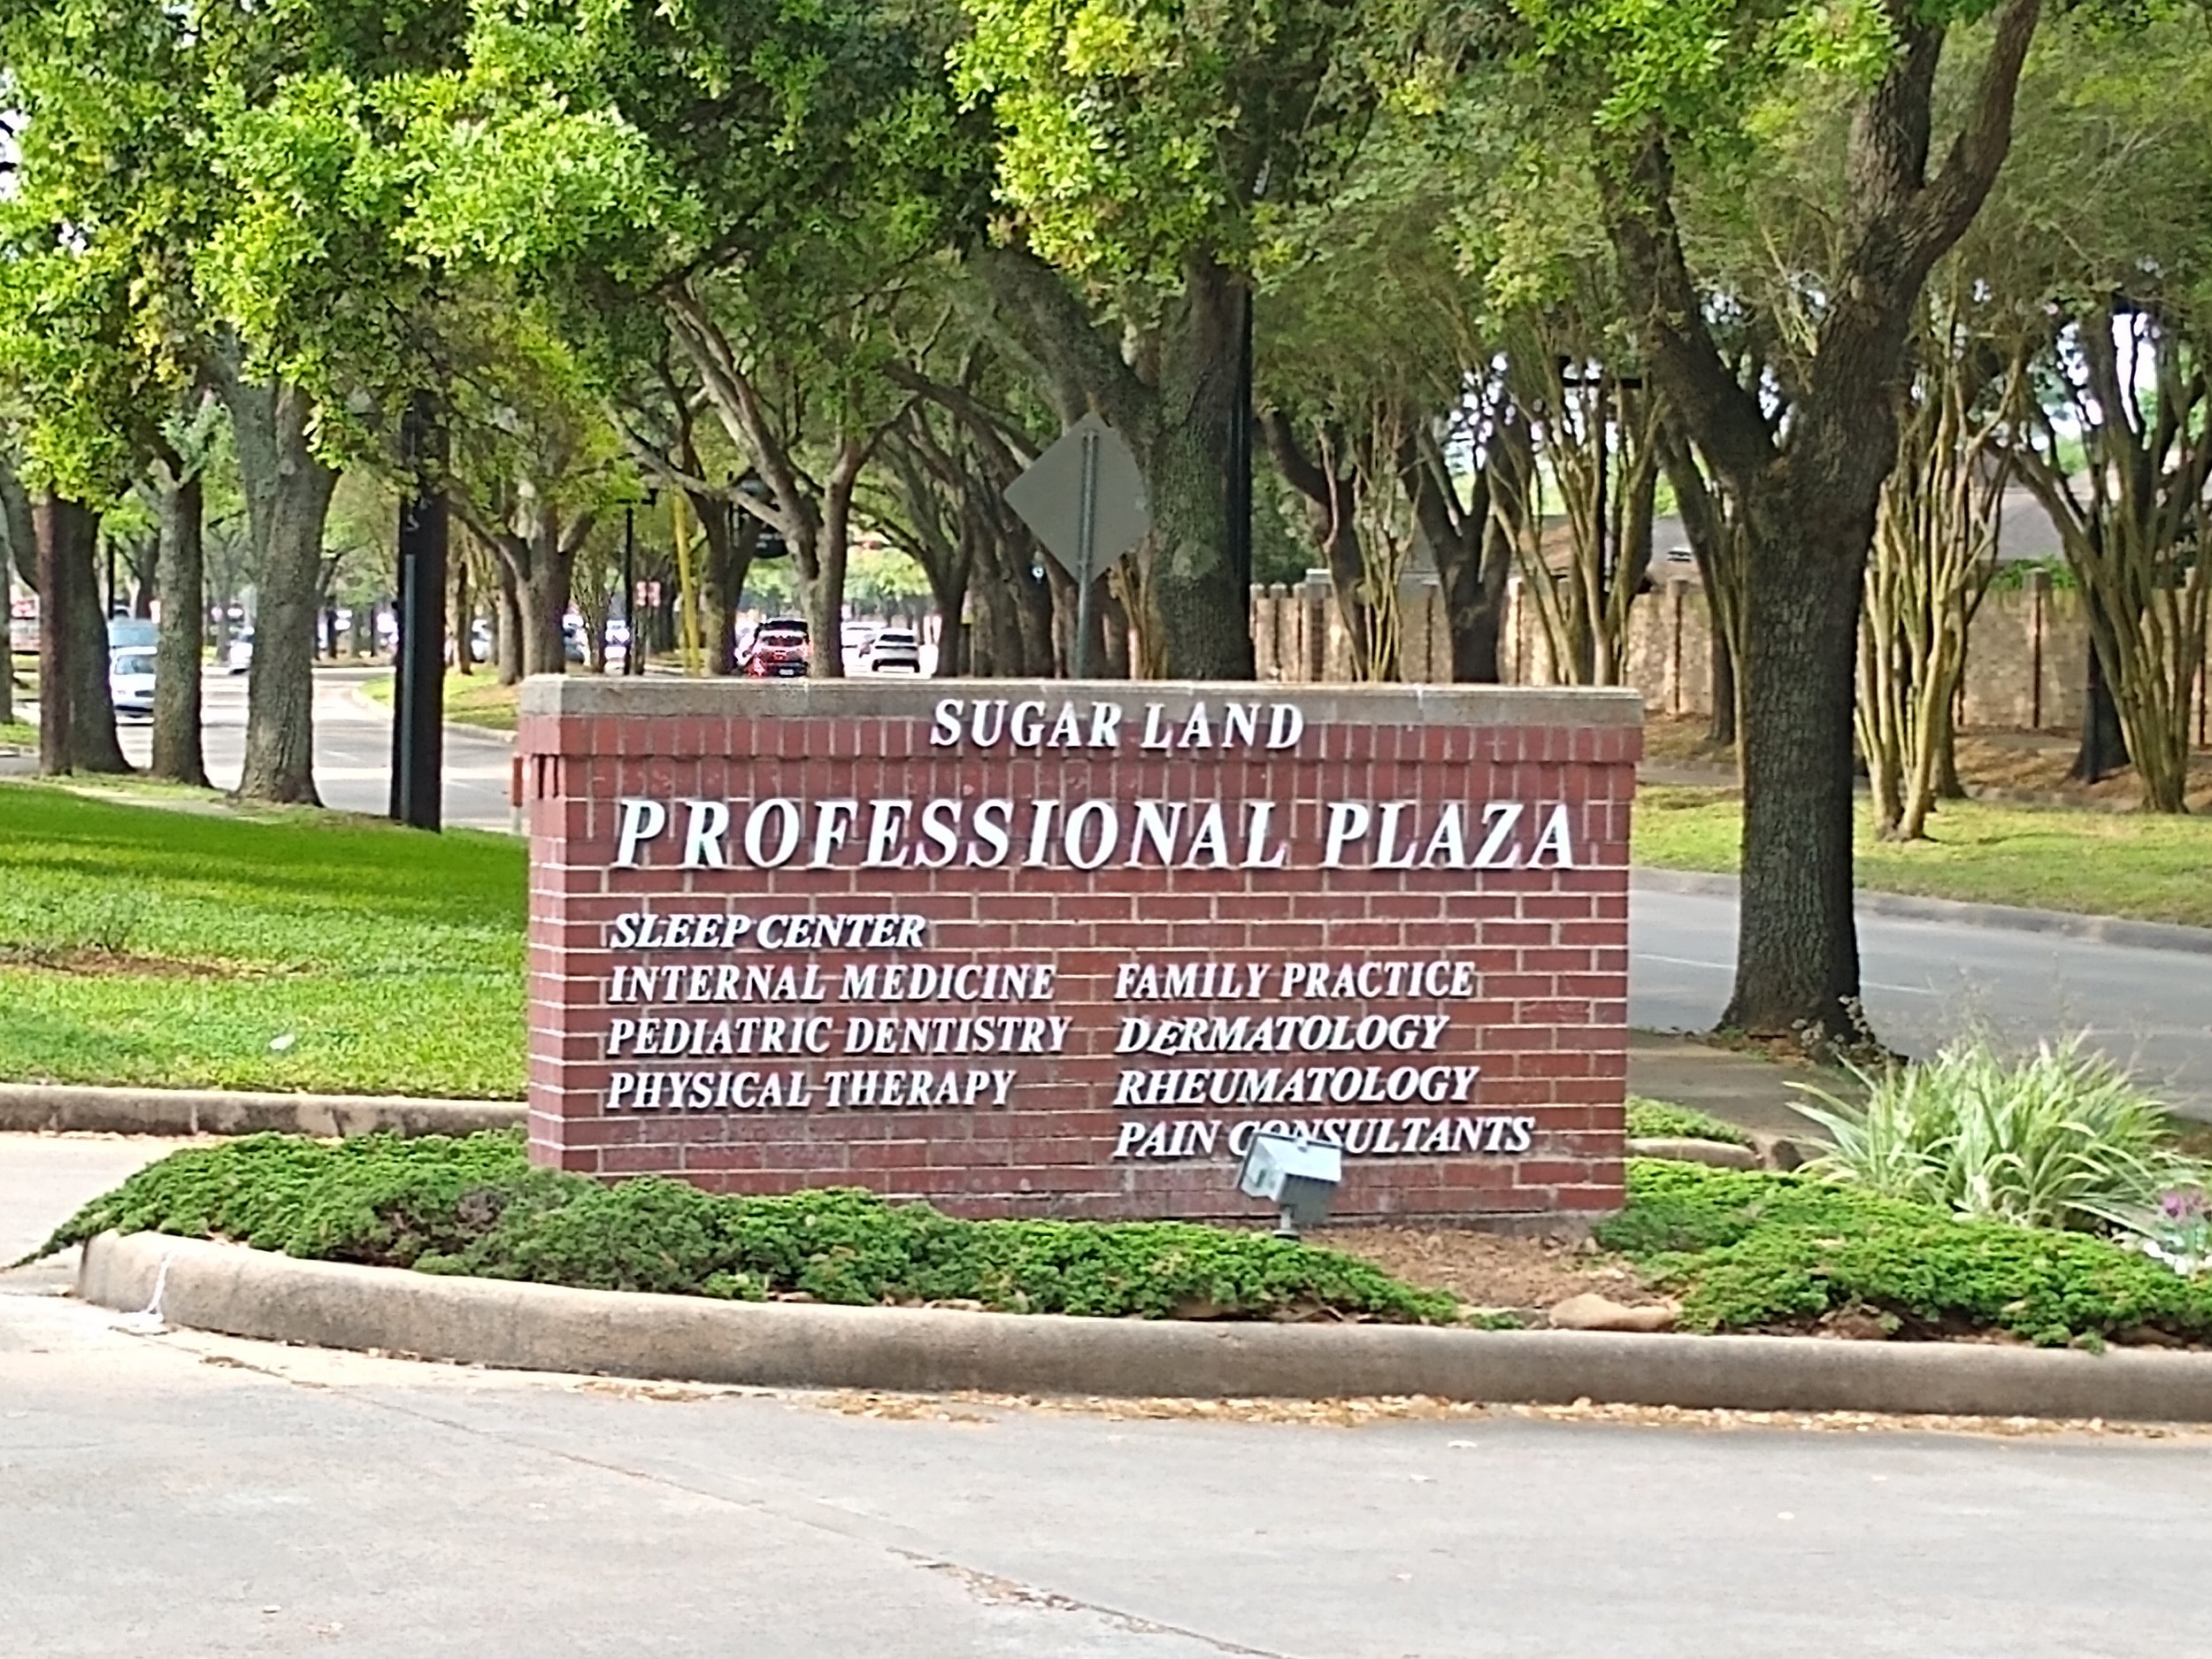 The Practice - Conveniently located off Highway 6 and close to 59. You can find us at the Sugar Land Professional Plaza.